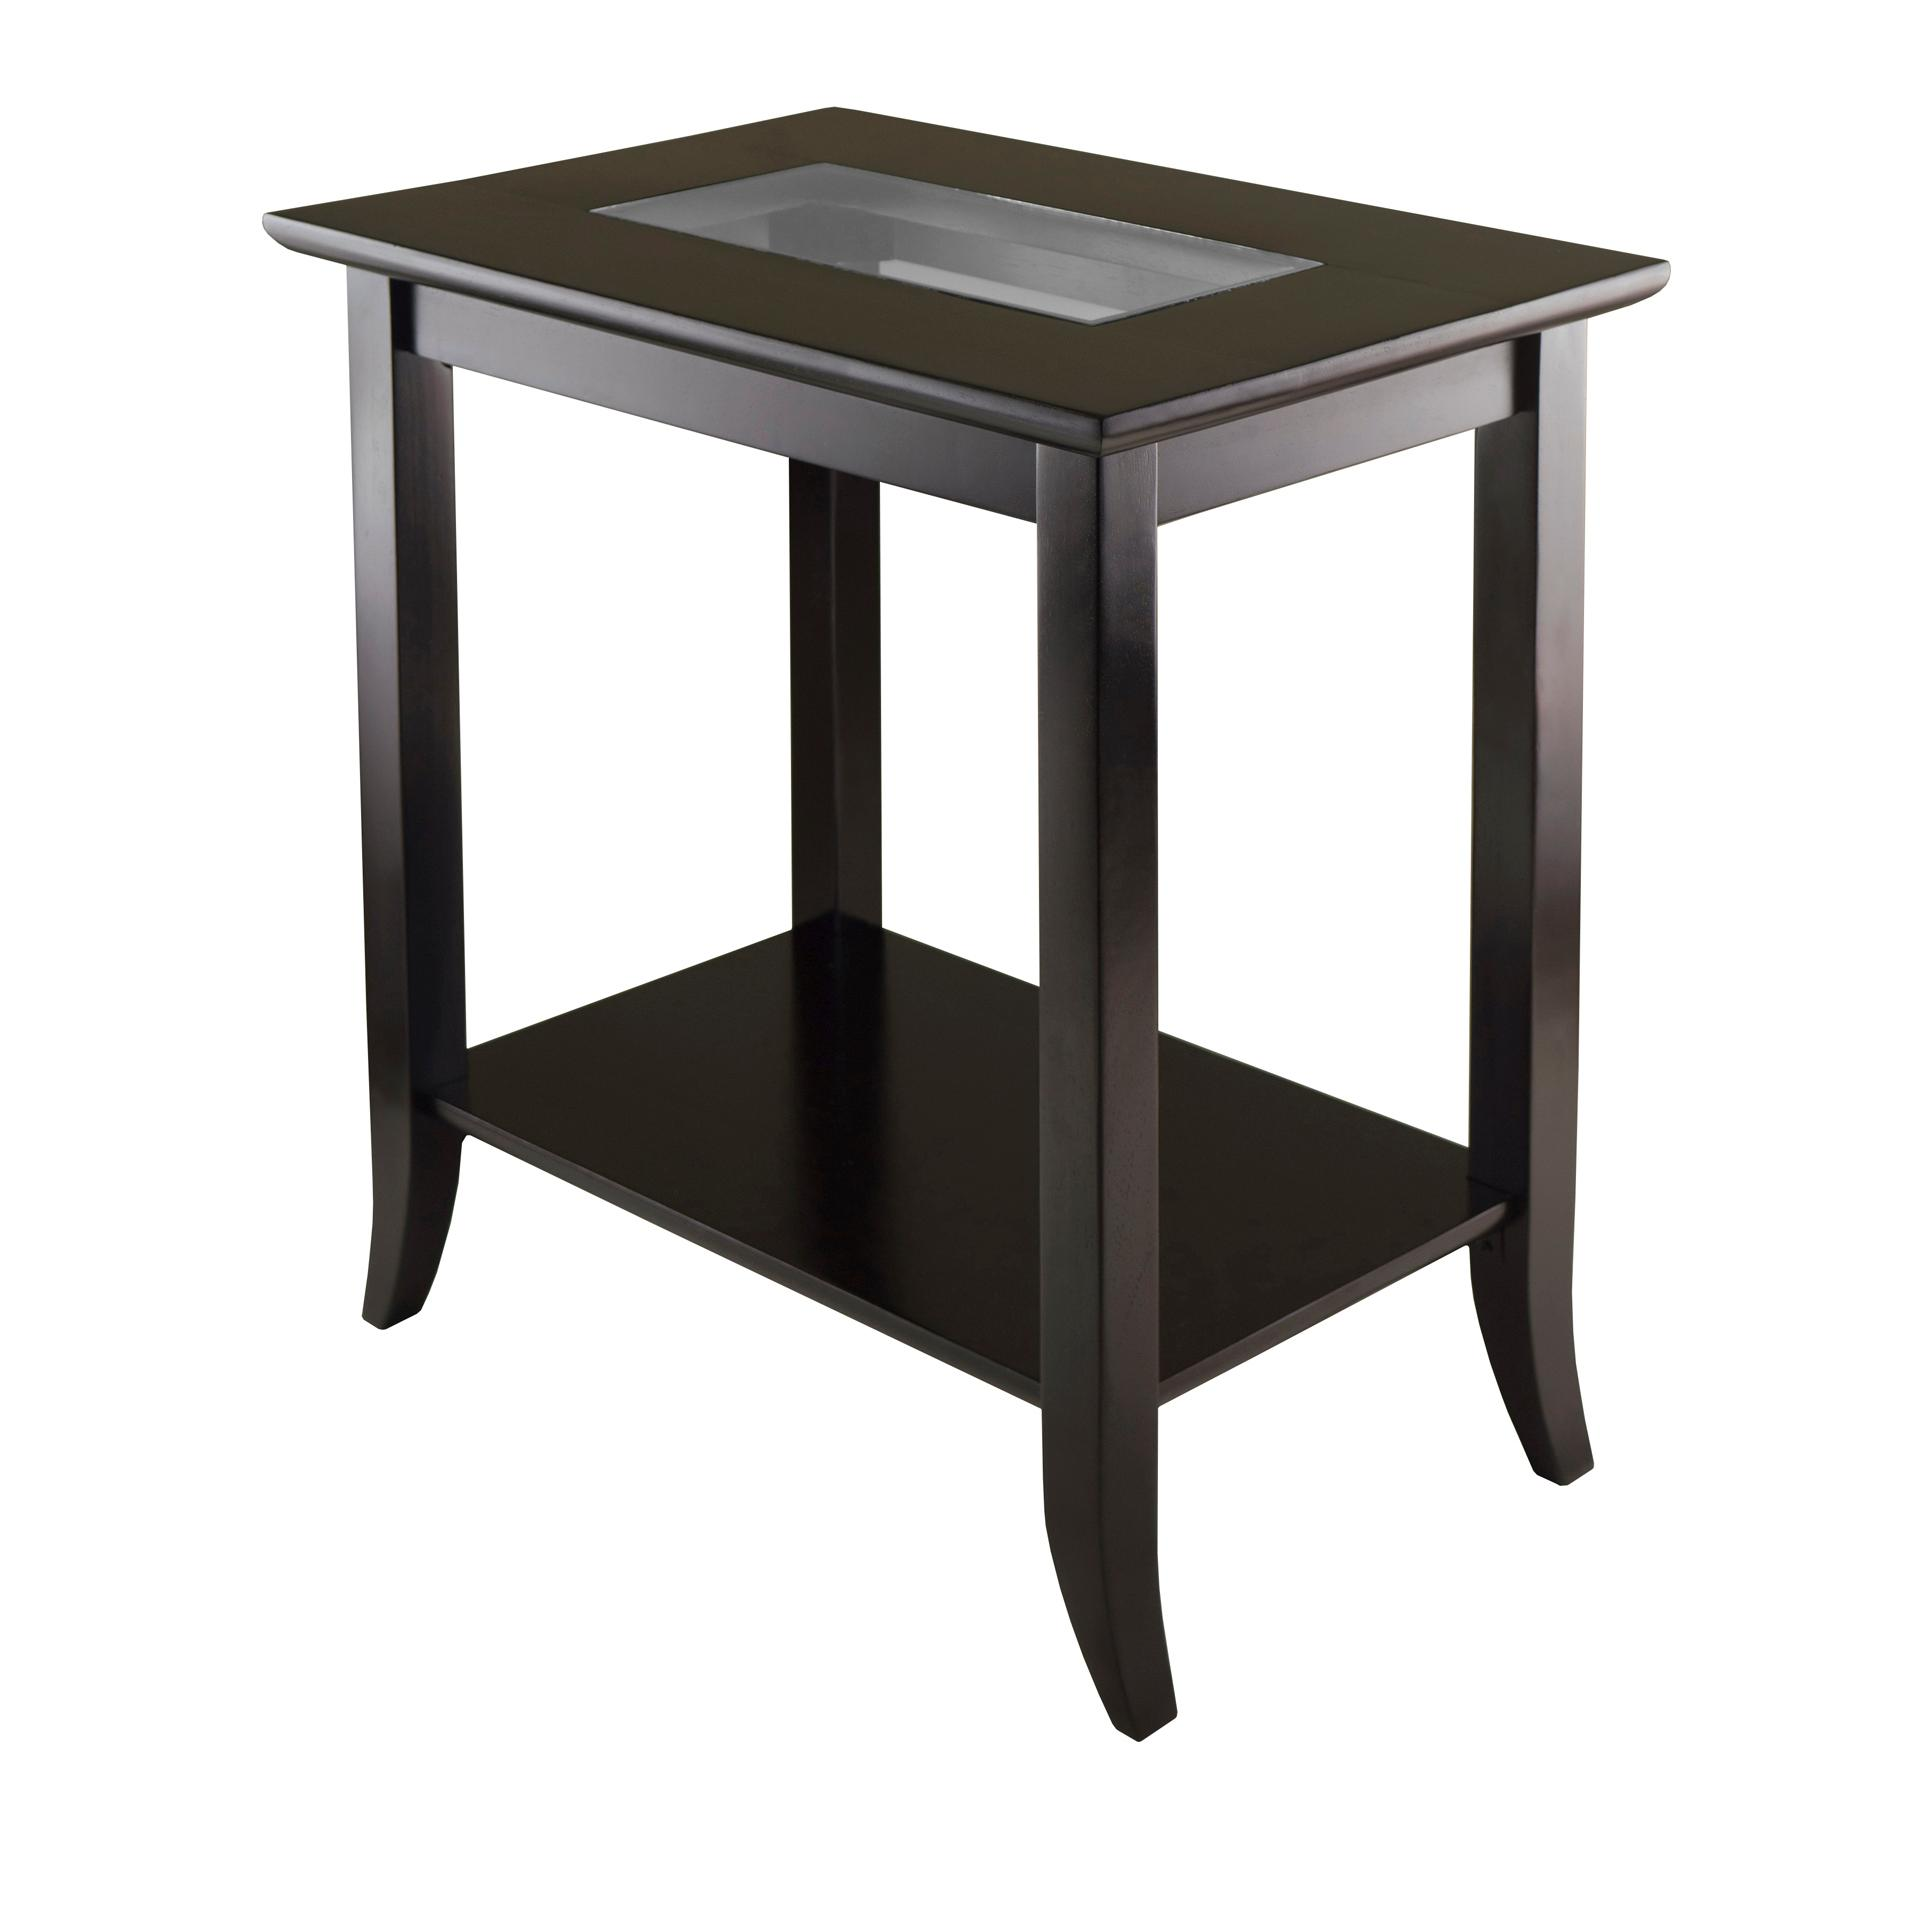 Kitchen Side Table: Amazon.com: Winsome 92419 Genoa Occasional Table, Dark